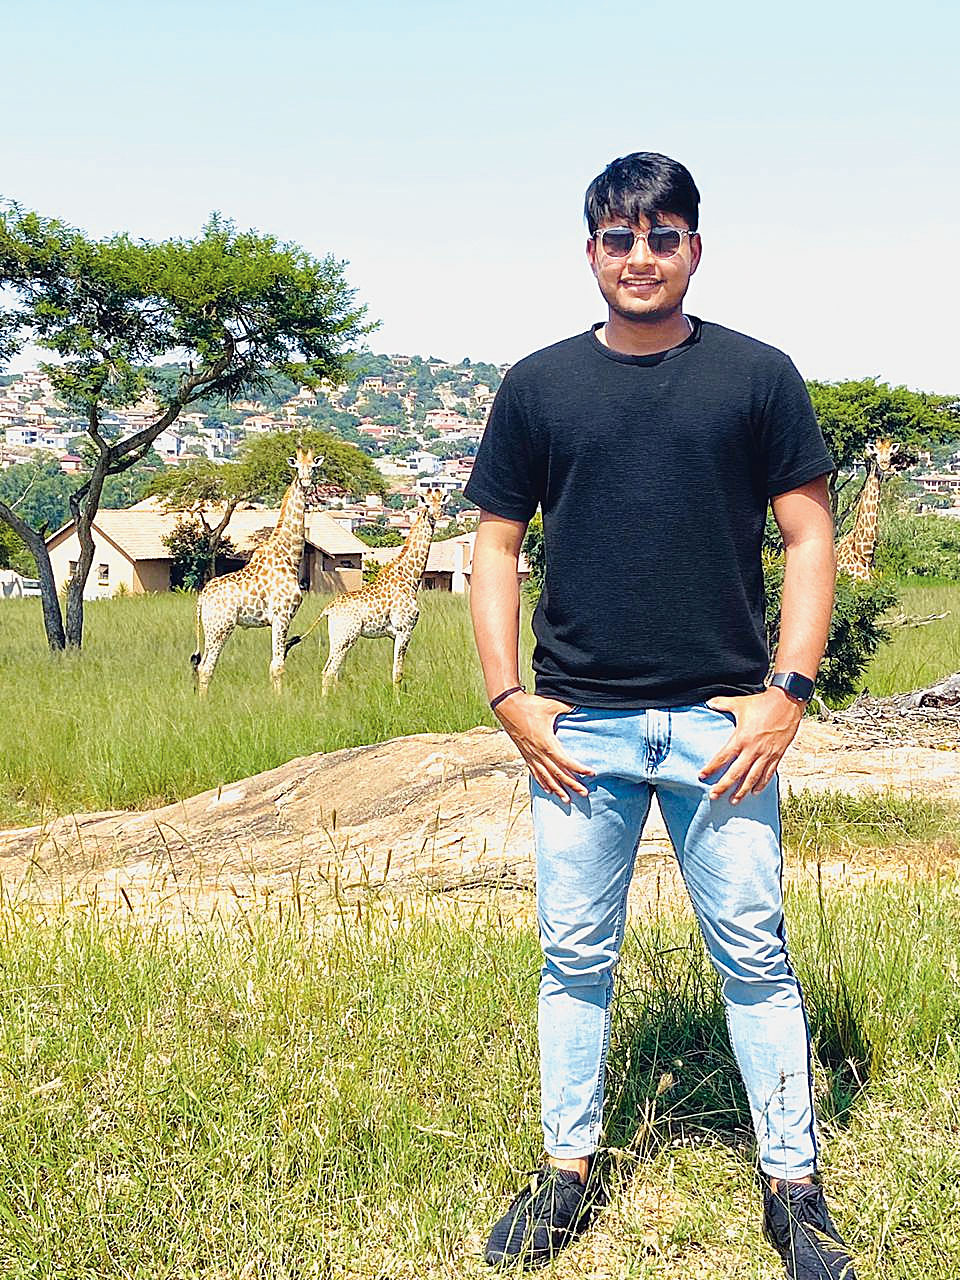 Sushant Mishra at Kruger National Park in South Africa earlier this month.